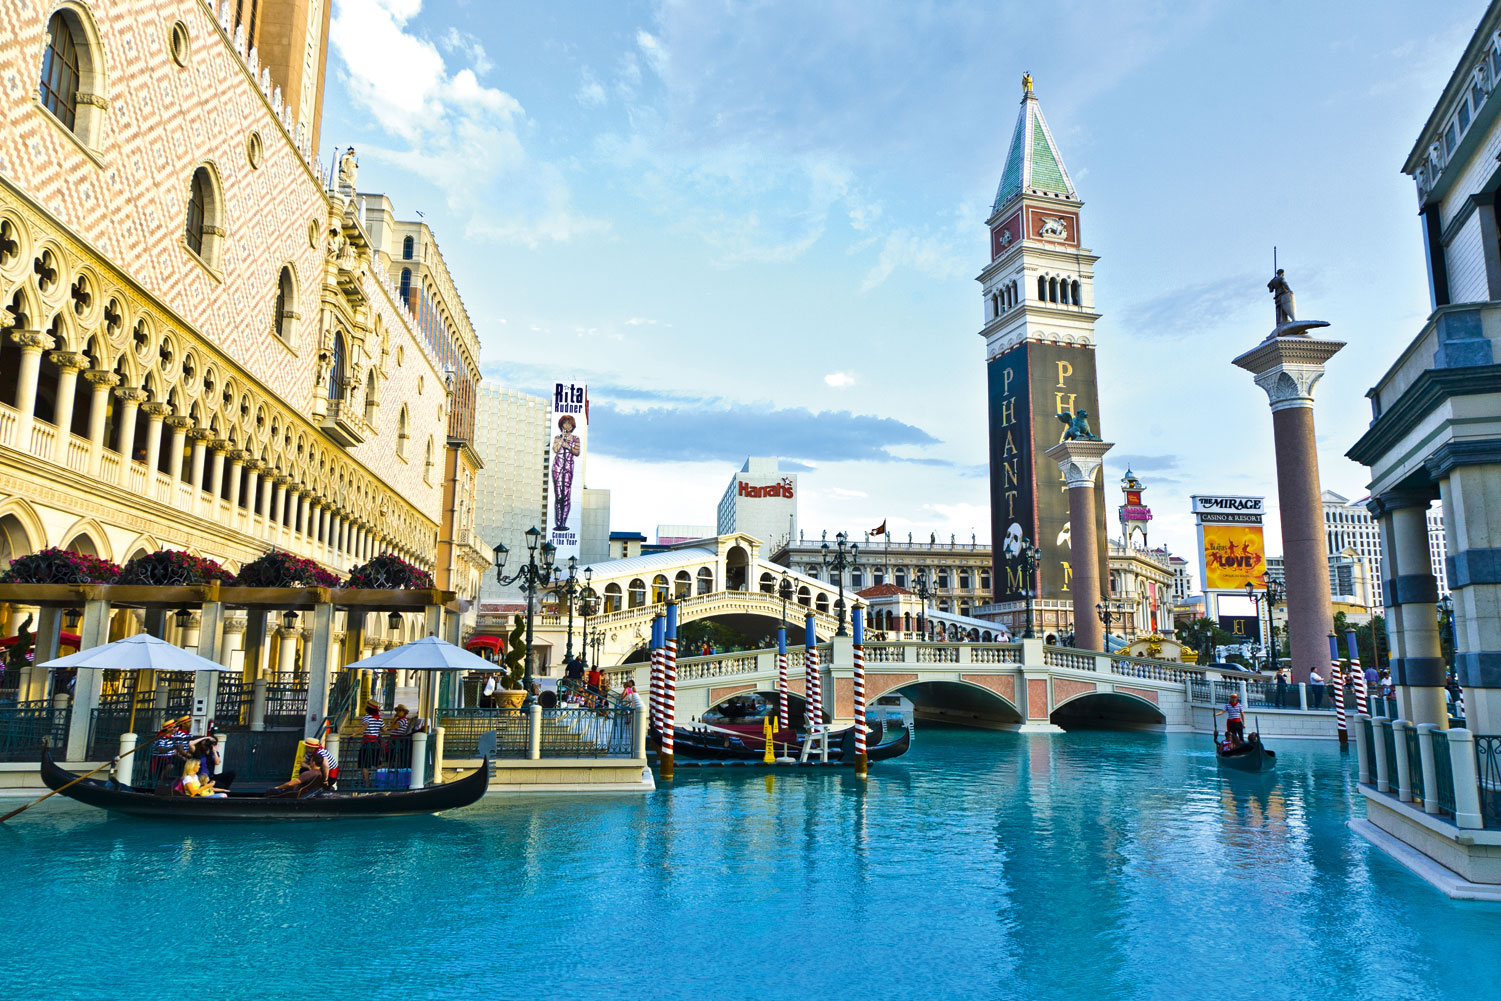 The venetian palazzo resort hotel casino las vegas nv value of hands in poker printable